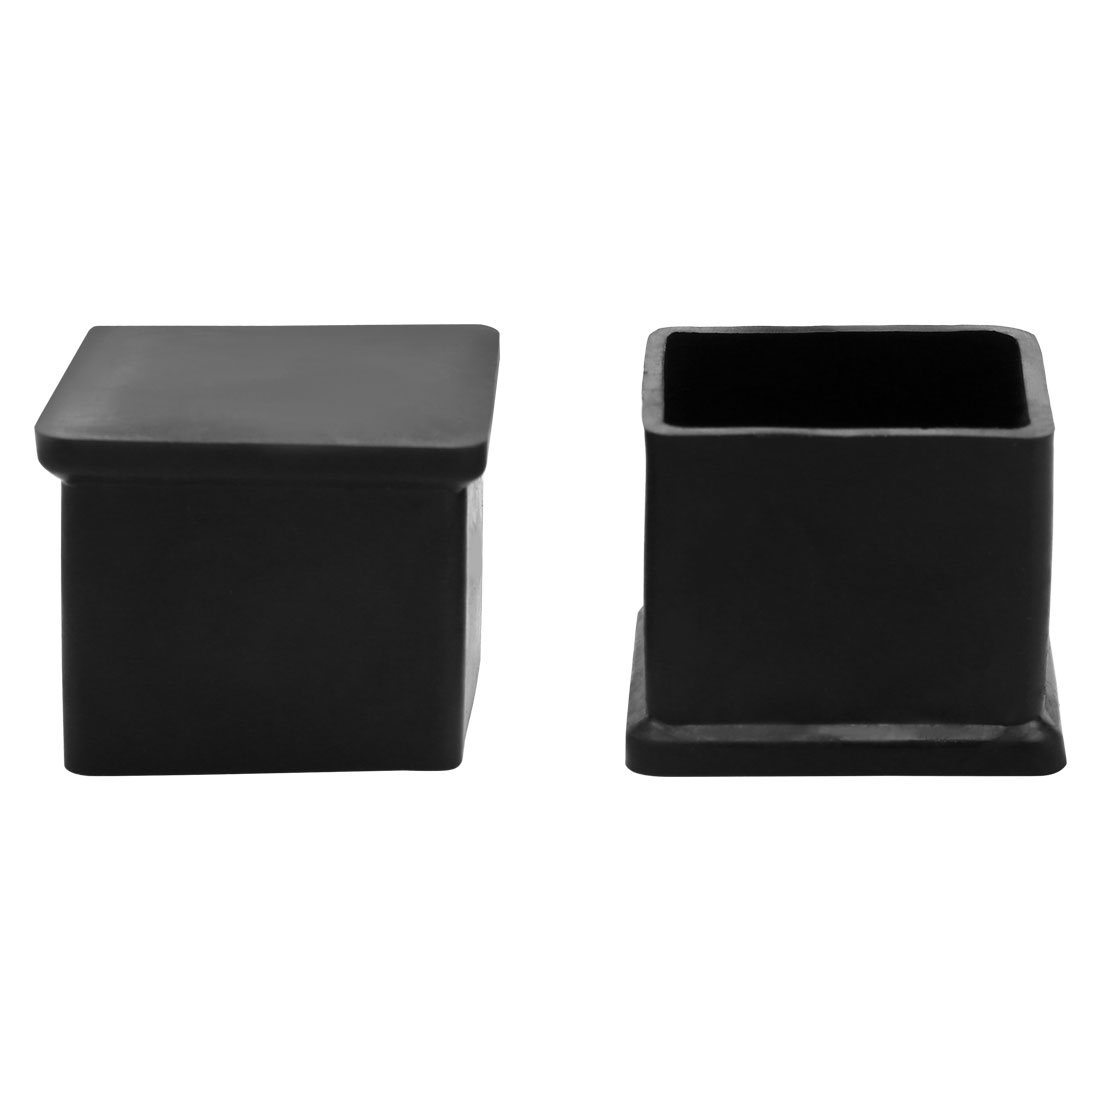 "2 Pcs Black Rubber Square 63/64"" x 63/64"" Chair Table Foot Cover"